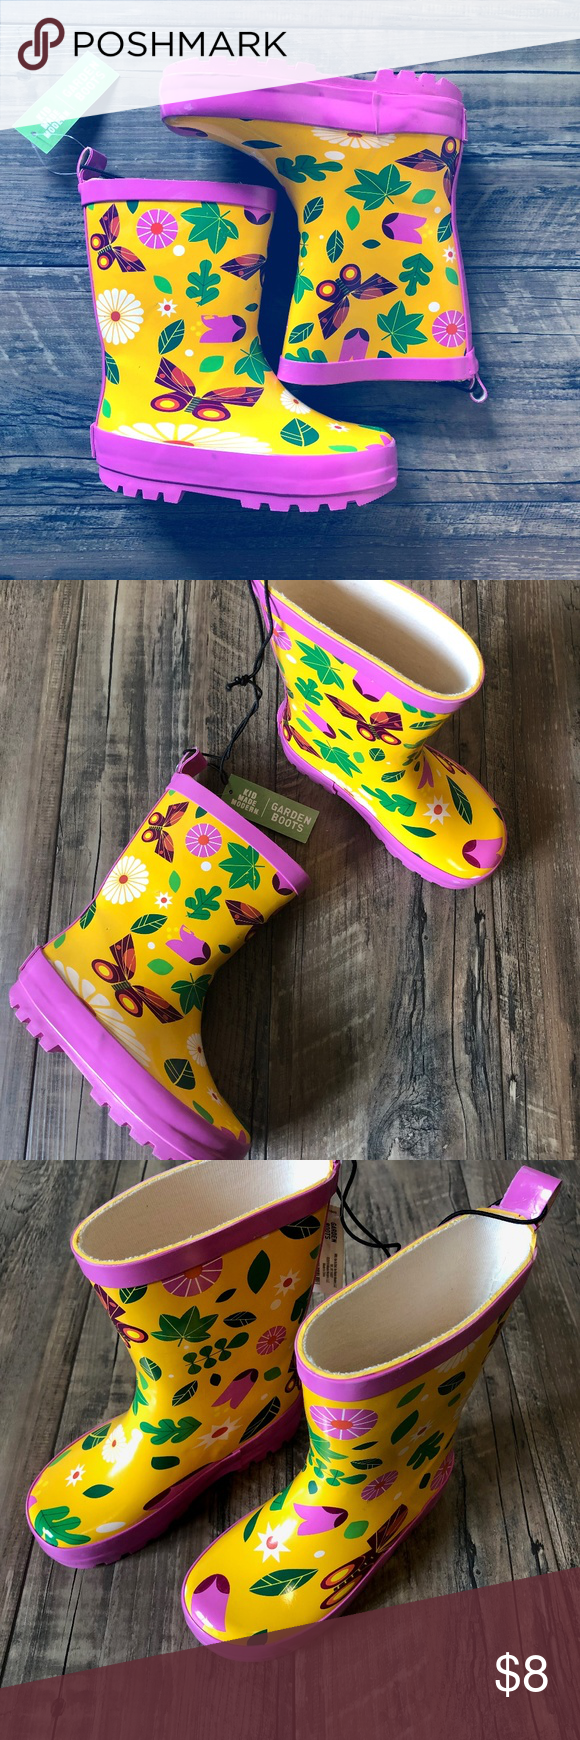 Kid Made Modern Butterly Rain Boots Bring some cheer to a rainy day with the Butterfly Garden Rain Boots from Kid Made Modern! With a pink trim on the top-line and soles, these rubber rain boots make for a cute addition to any outfit. A bright pattern of flowers and butterflies on a yellow background make for a nice pop of color, keeping your little one looking cute and comfy as they splash around in puddles. Kid Made Modern Shoes Rain & Snow Boots #rainydayoutfitforwork